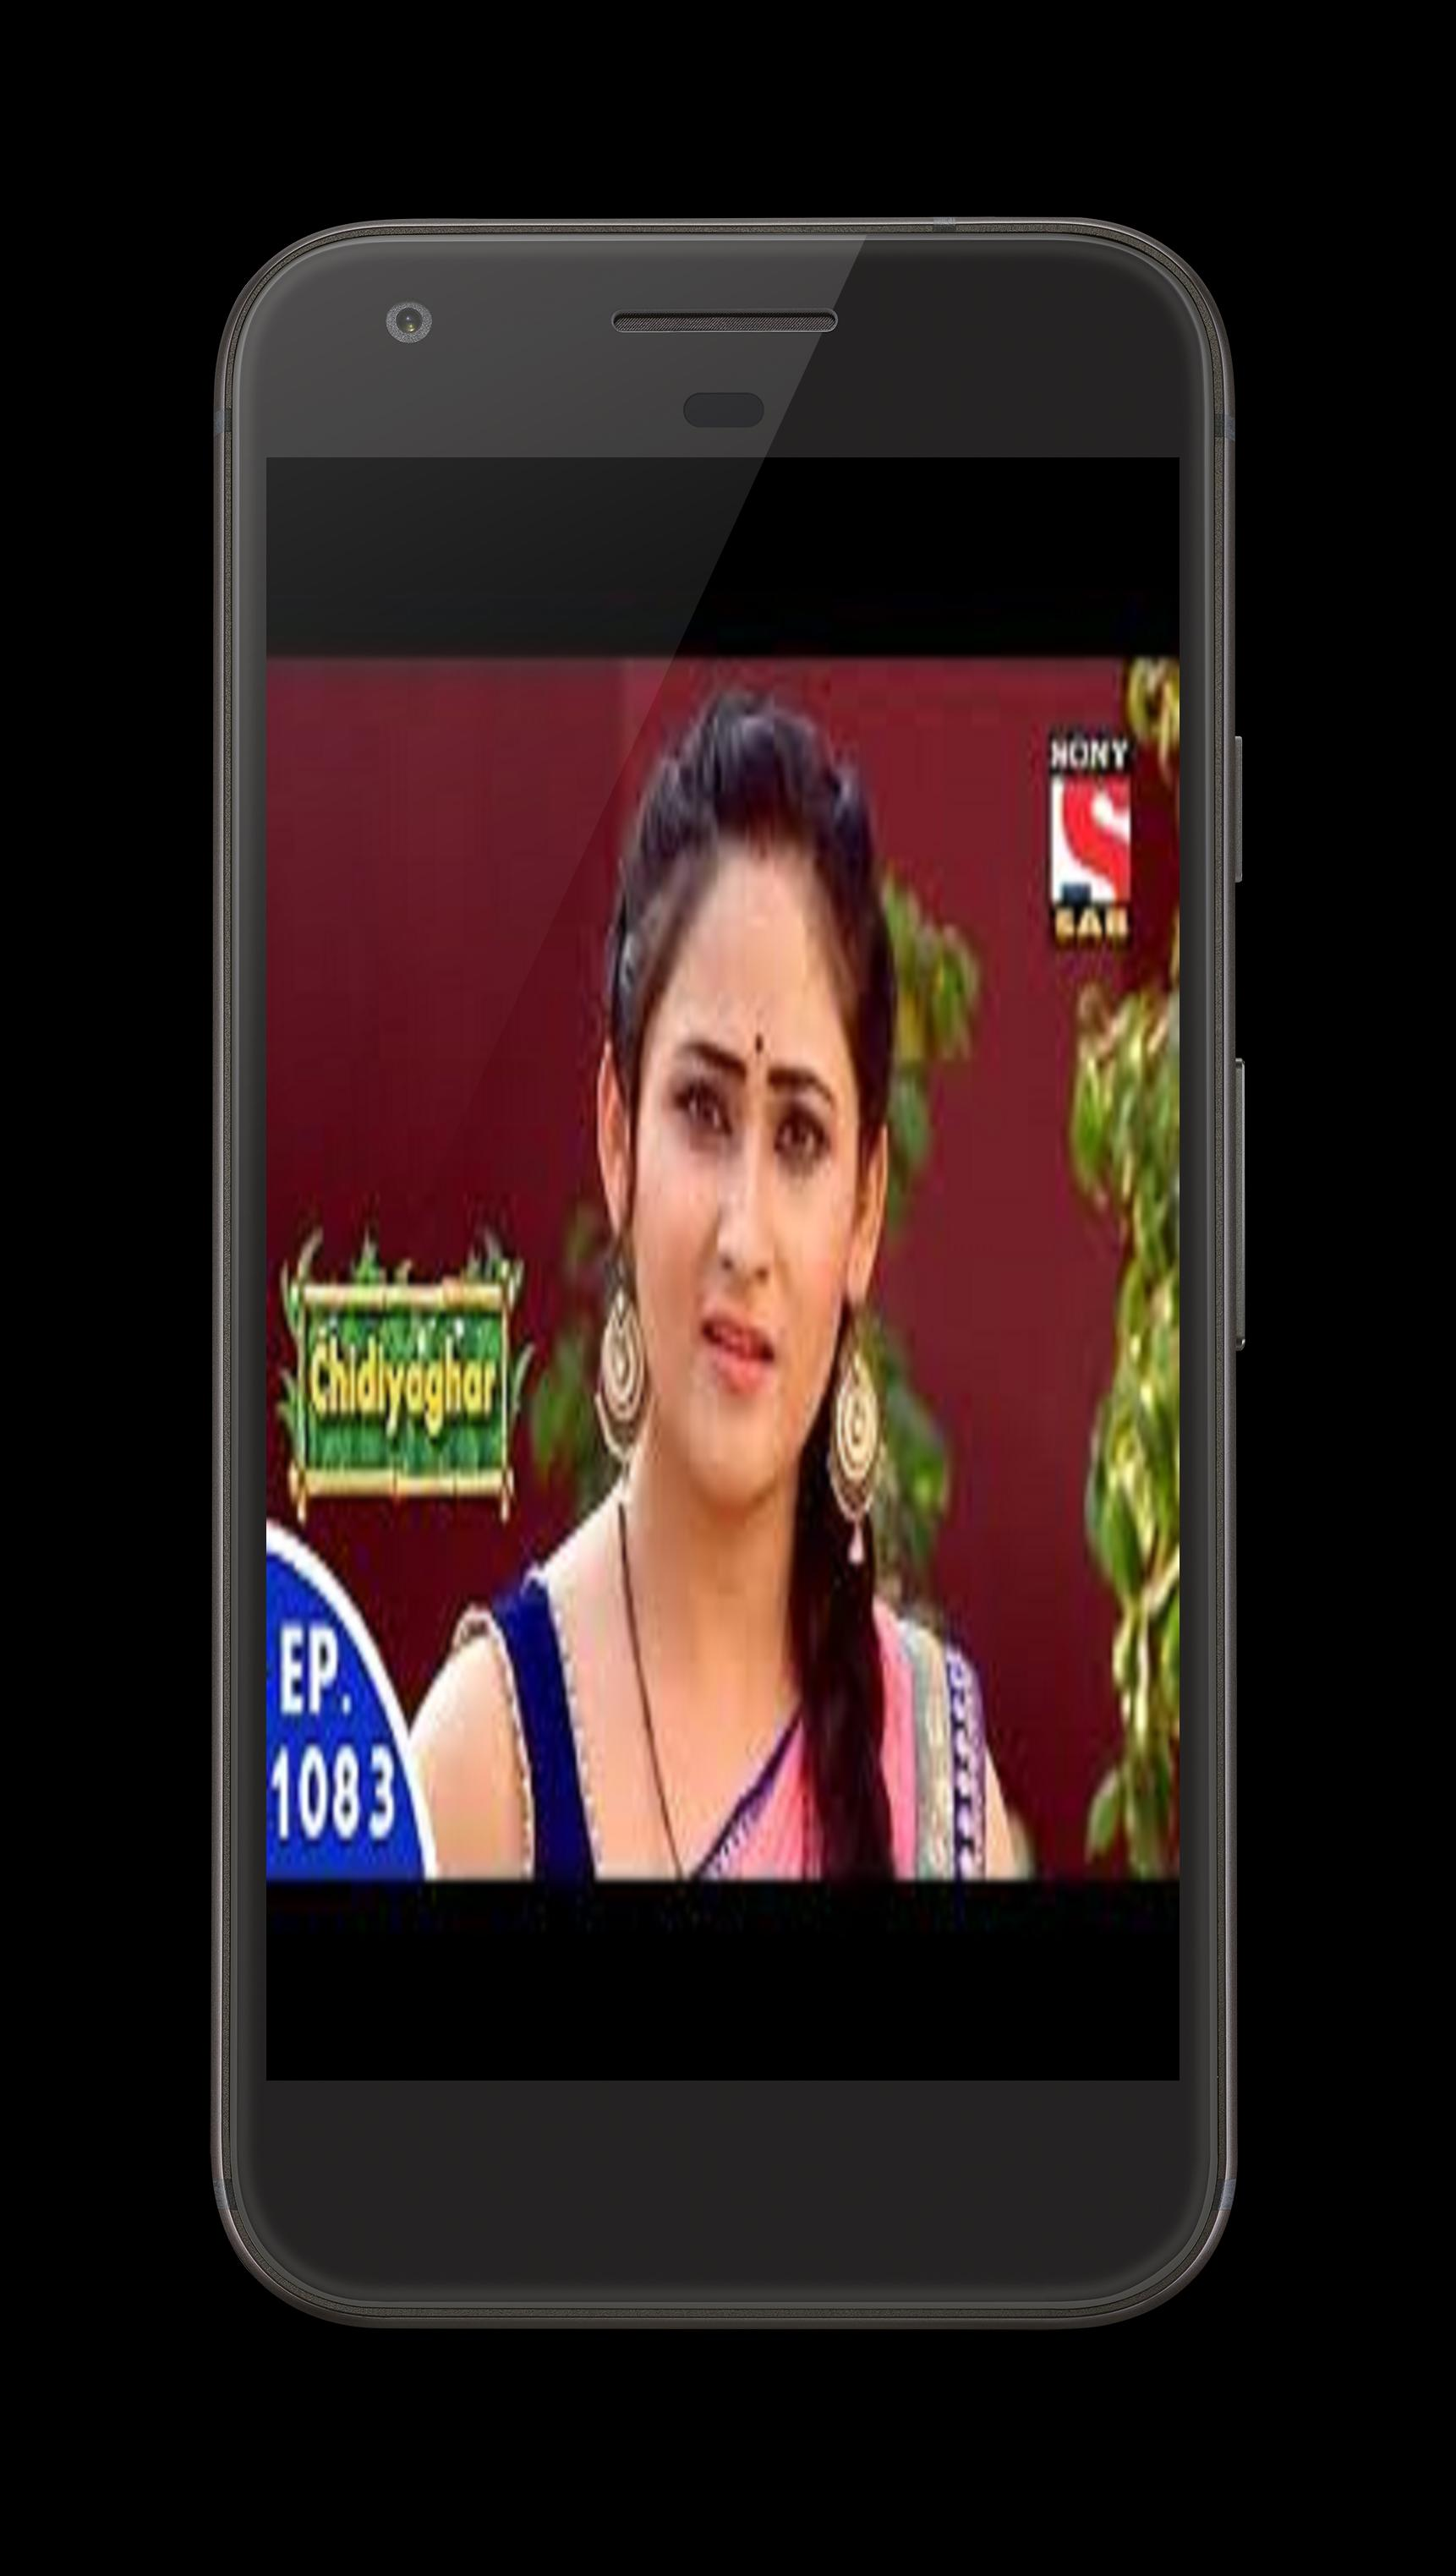 SONY SAB TV for Android - APK Download